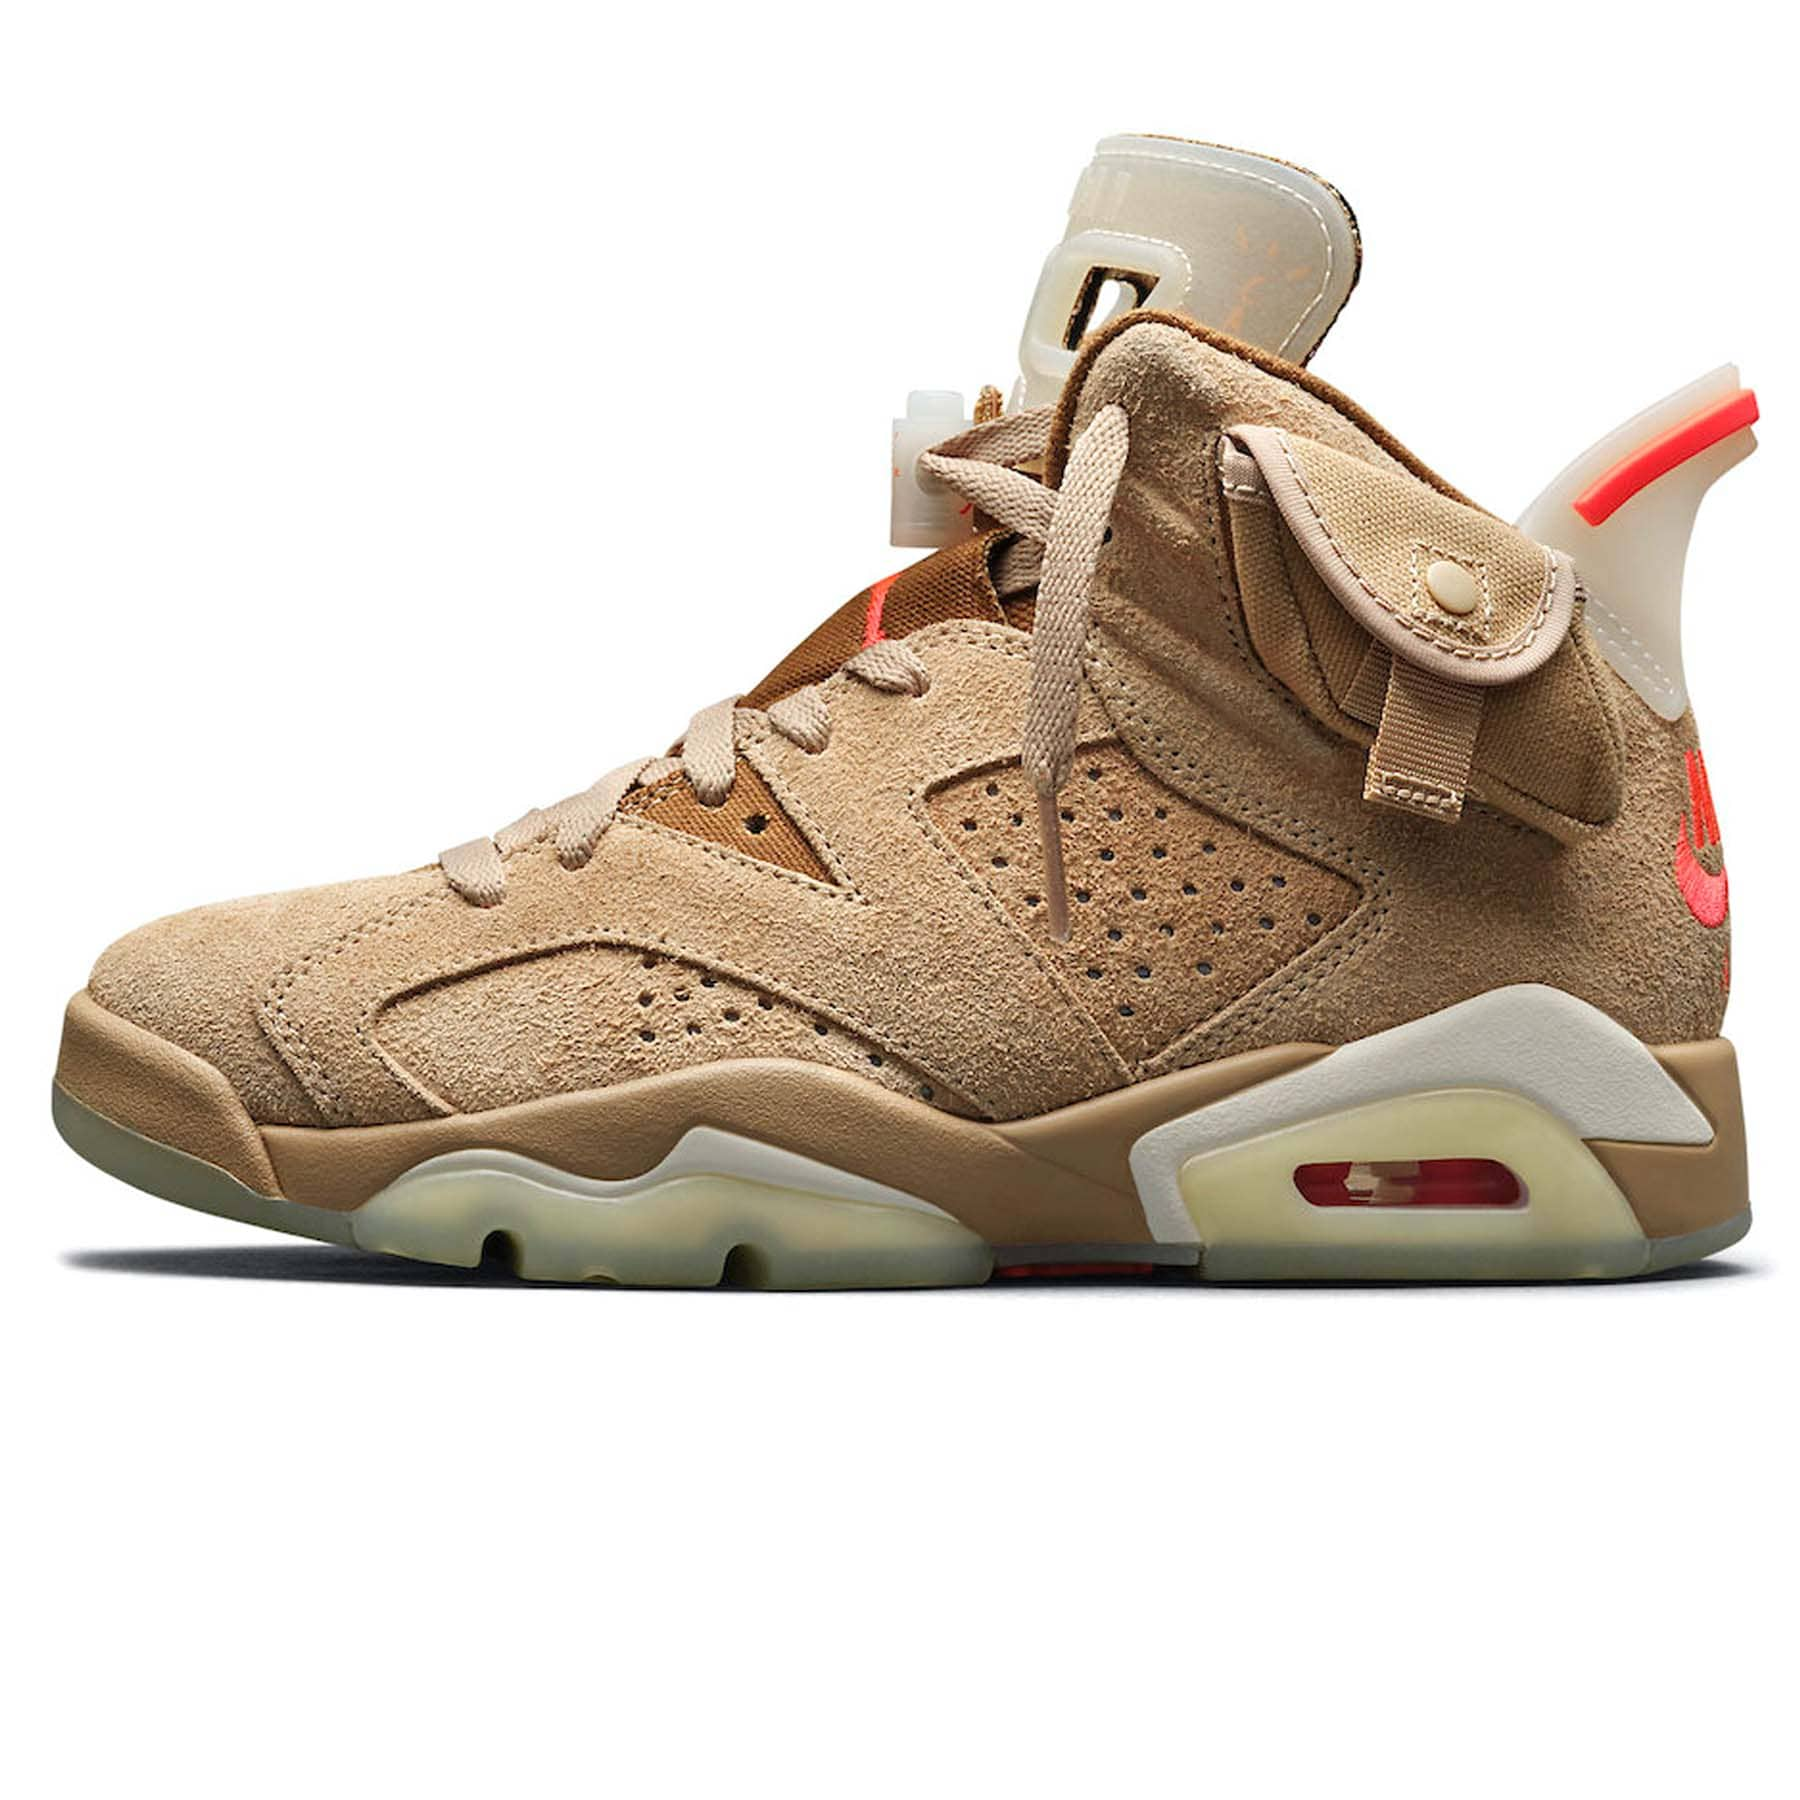 Travis Scott x Air Jordan 6 Retro 'British Khaki' - Kick Game